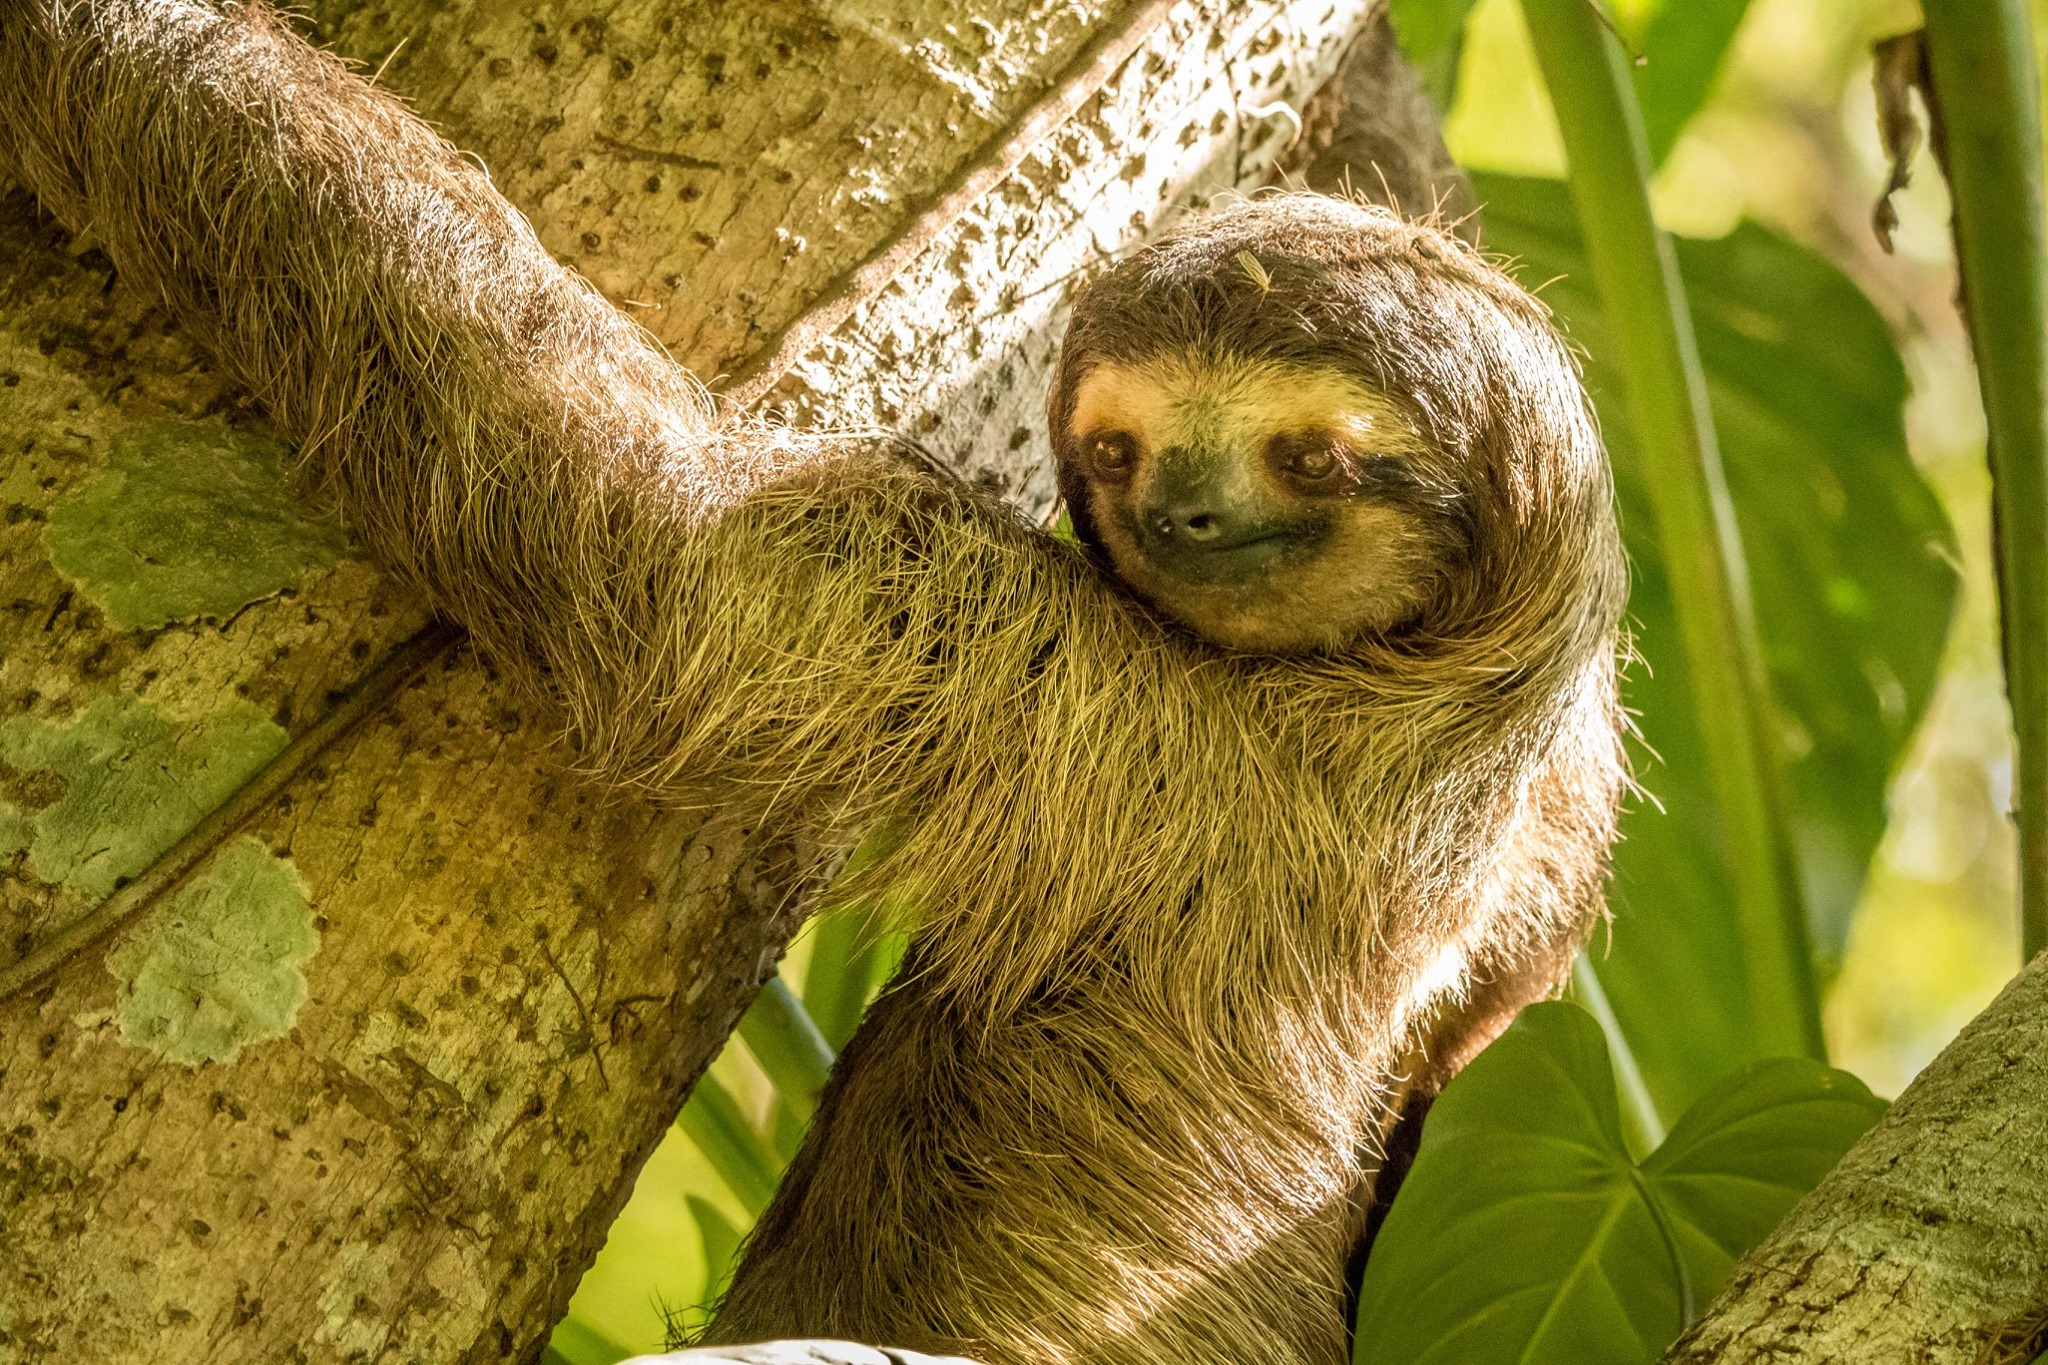 #Two toed Sloth